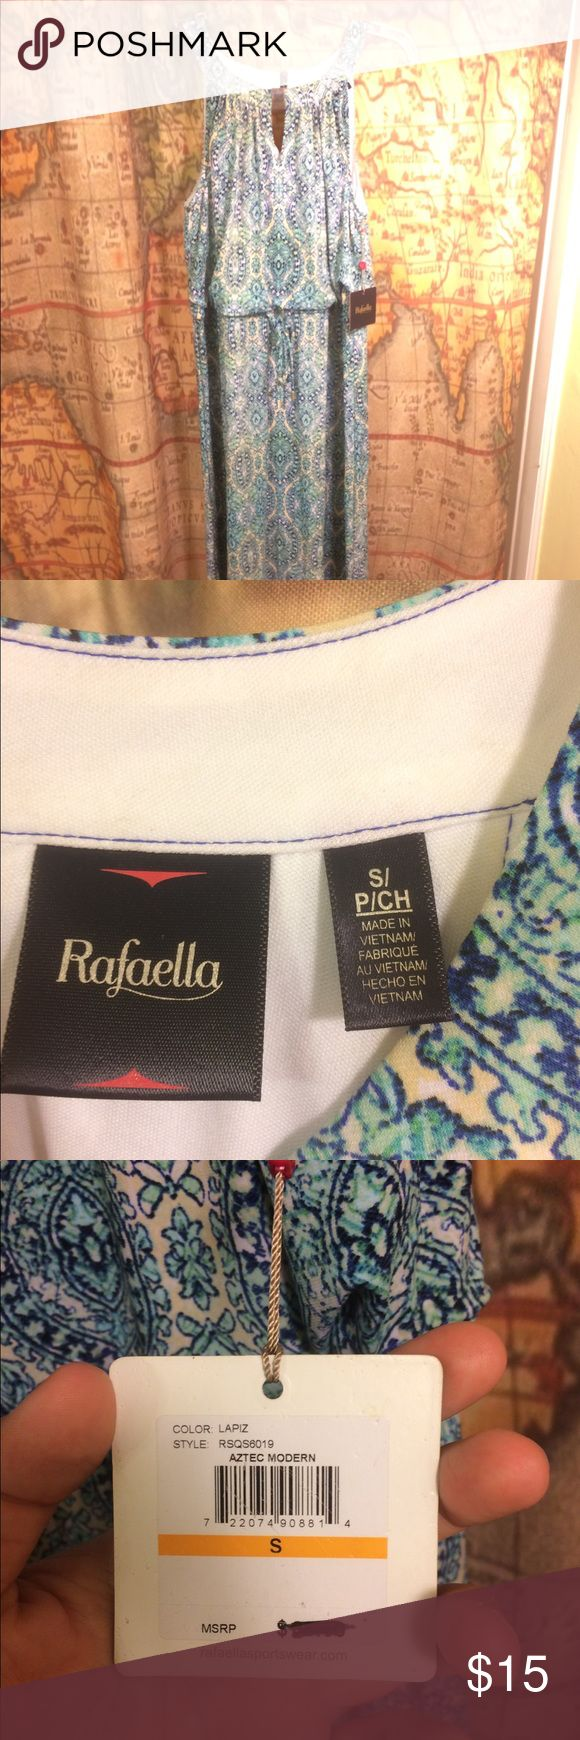 NWT RAFELLA S GIRLY AZTEC SLEEVELESS TEA LENGTH Lost the receipt!! Perfect for a wedding guest.  Please comment any questions or requests for more pics! Rafella Dresses Maxi